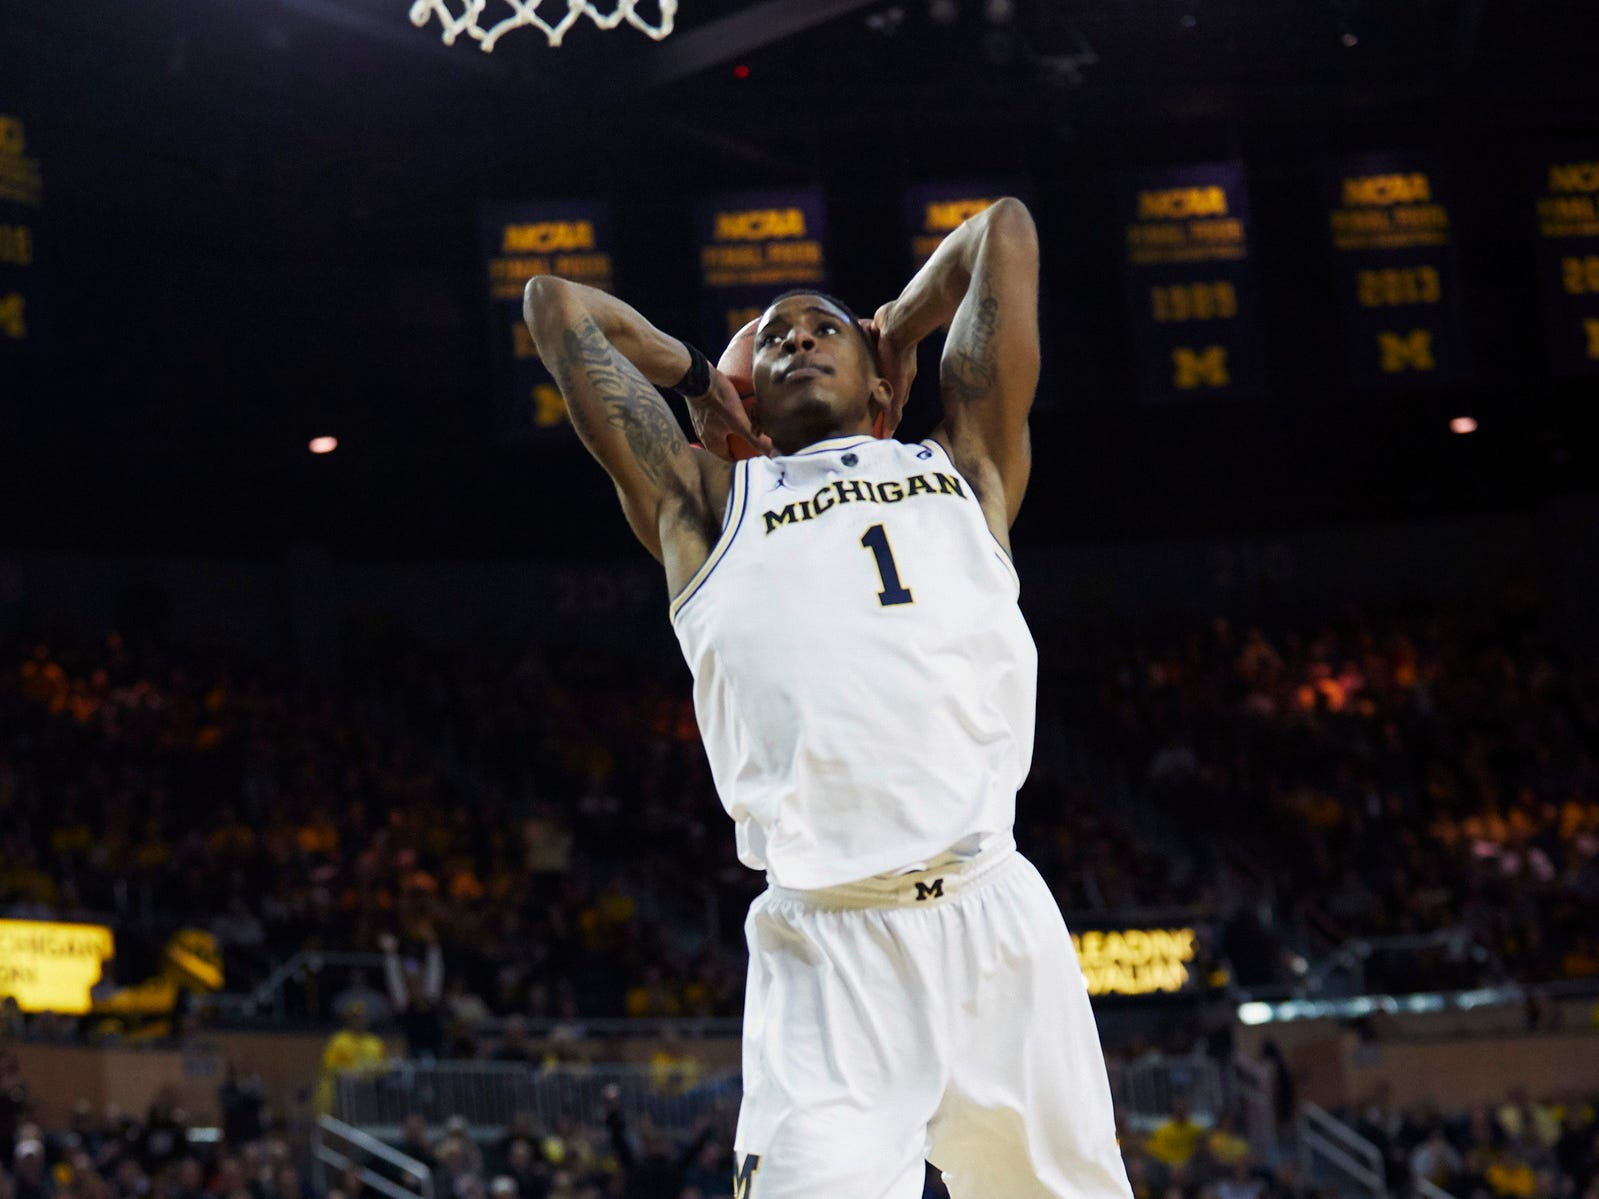 Michigan guard Charles Matthews dunks in the first half on Saturday, Dec. 15, 2018, at Crisler Center.